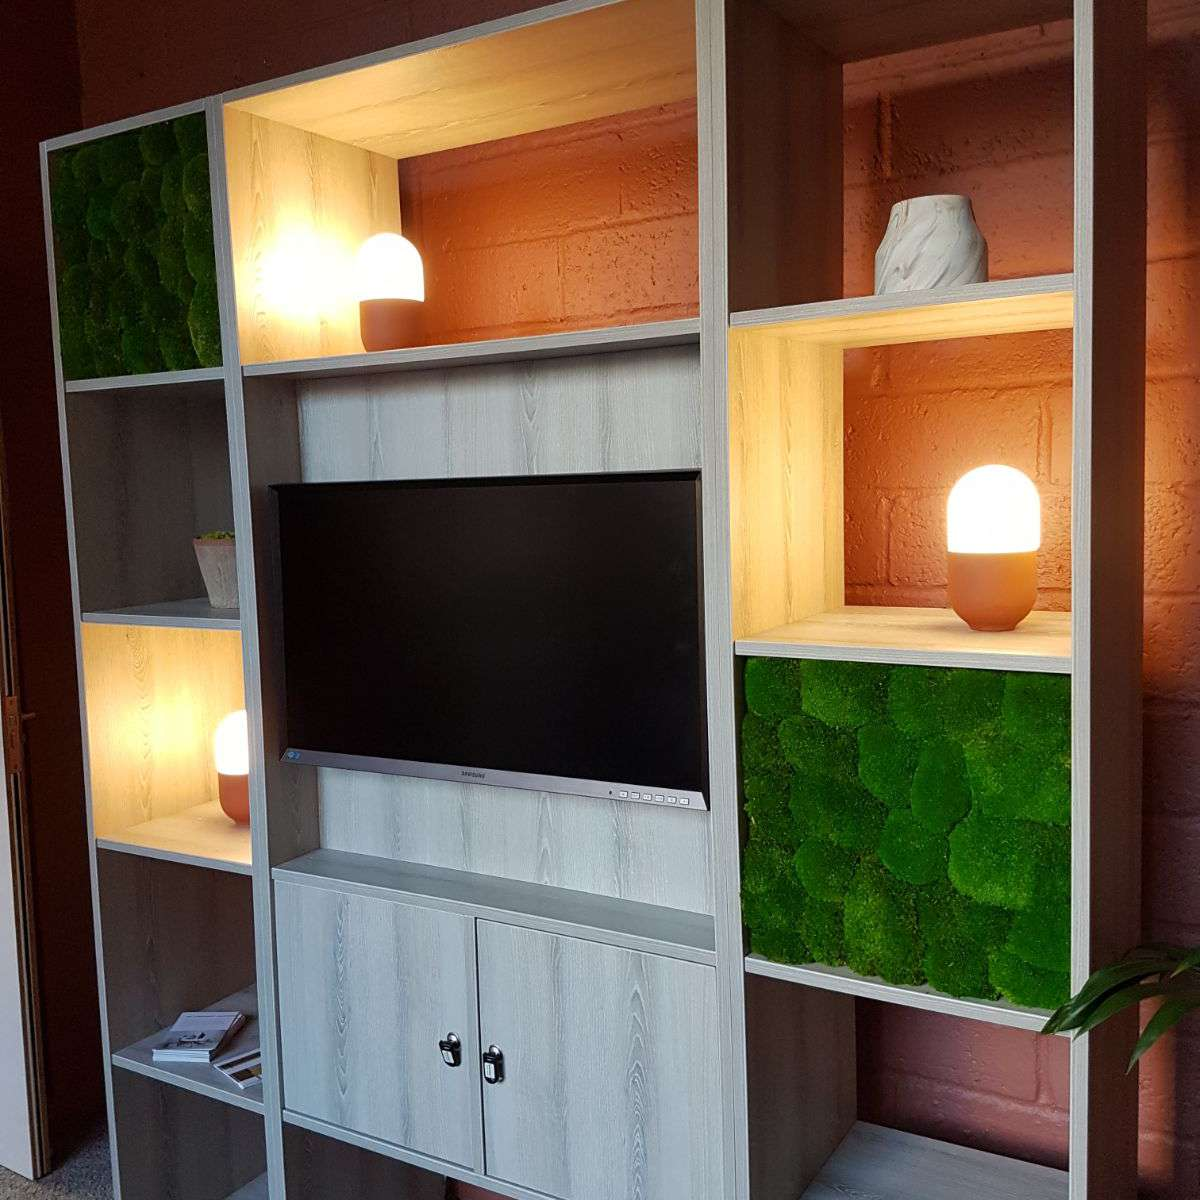 Moss Inserts in a Wall Panel